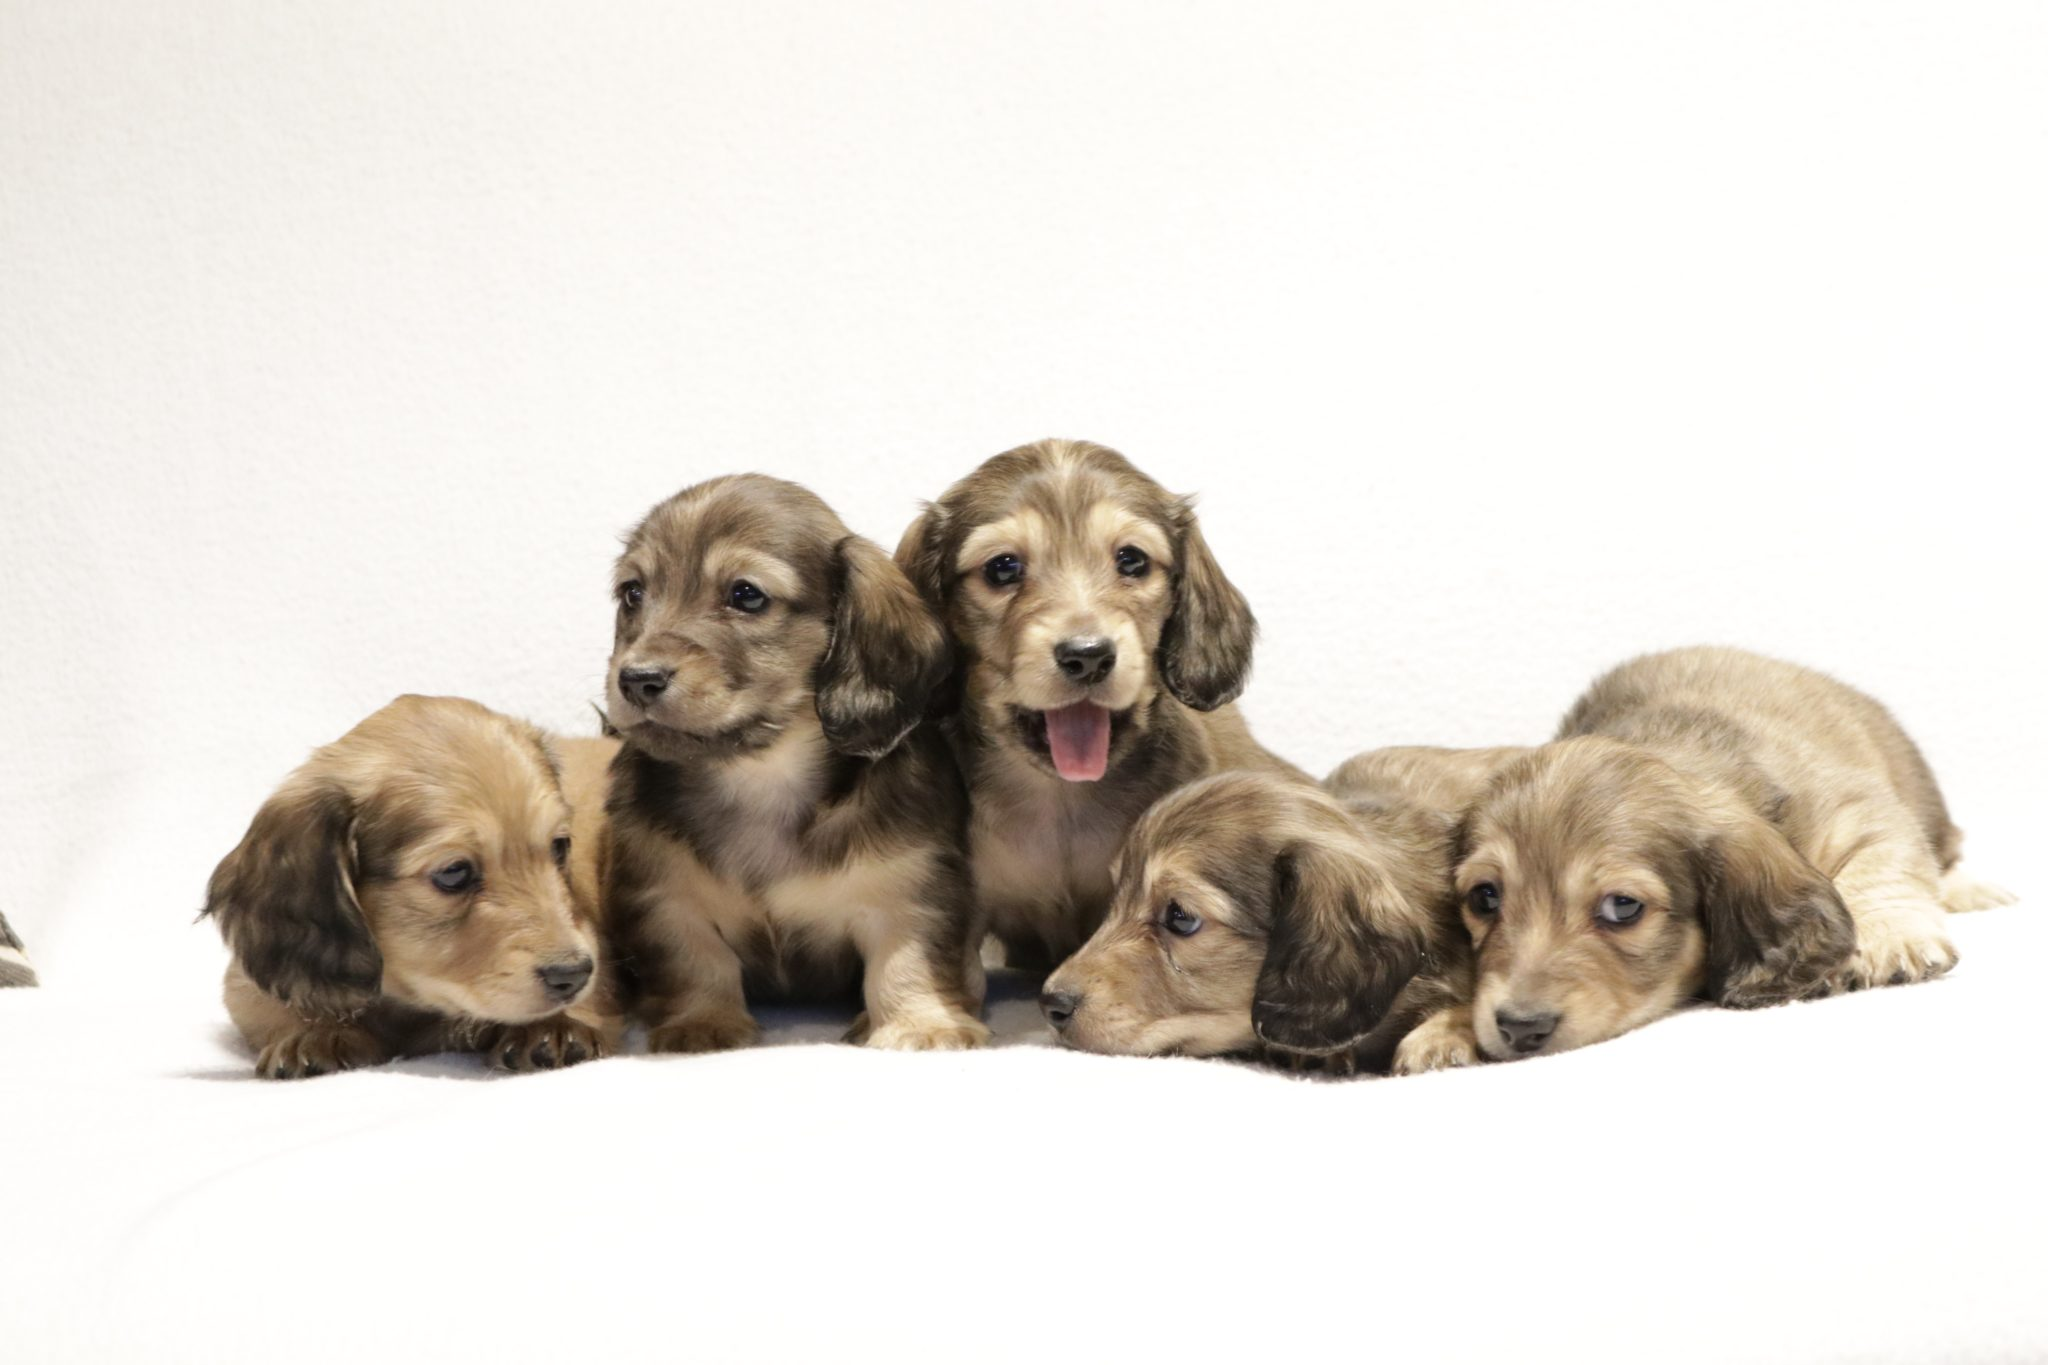 Miniature dachshund English Cream puppies for sale & future expected